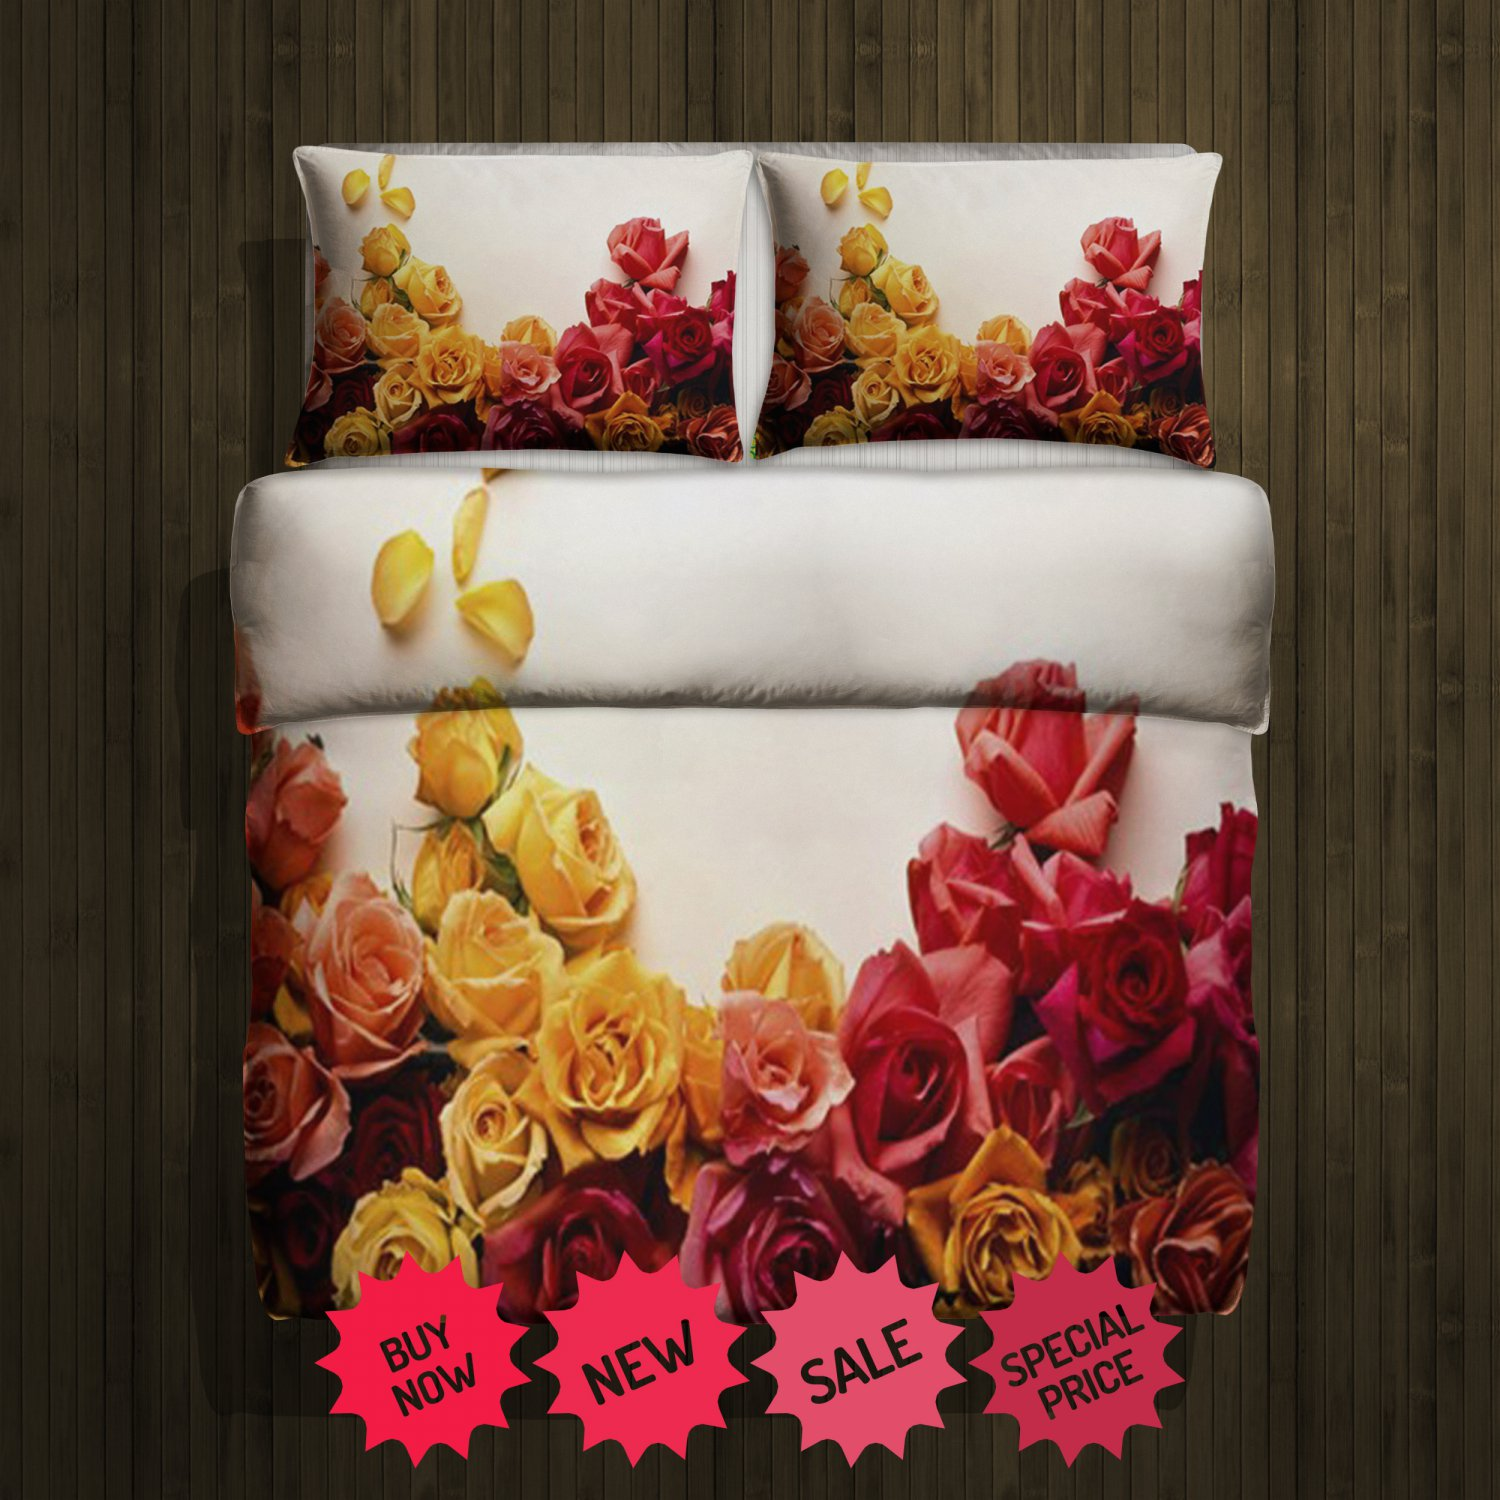 Rose Fleece Blanket Large & 2 Pillow Cases #84627540,84627542(2)